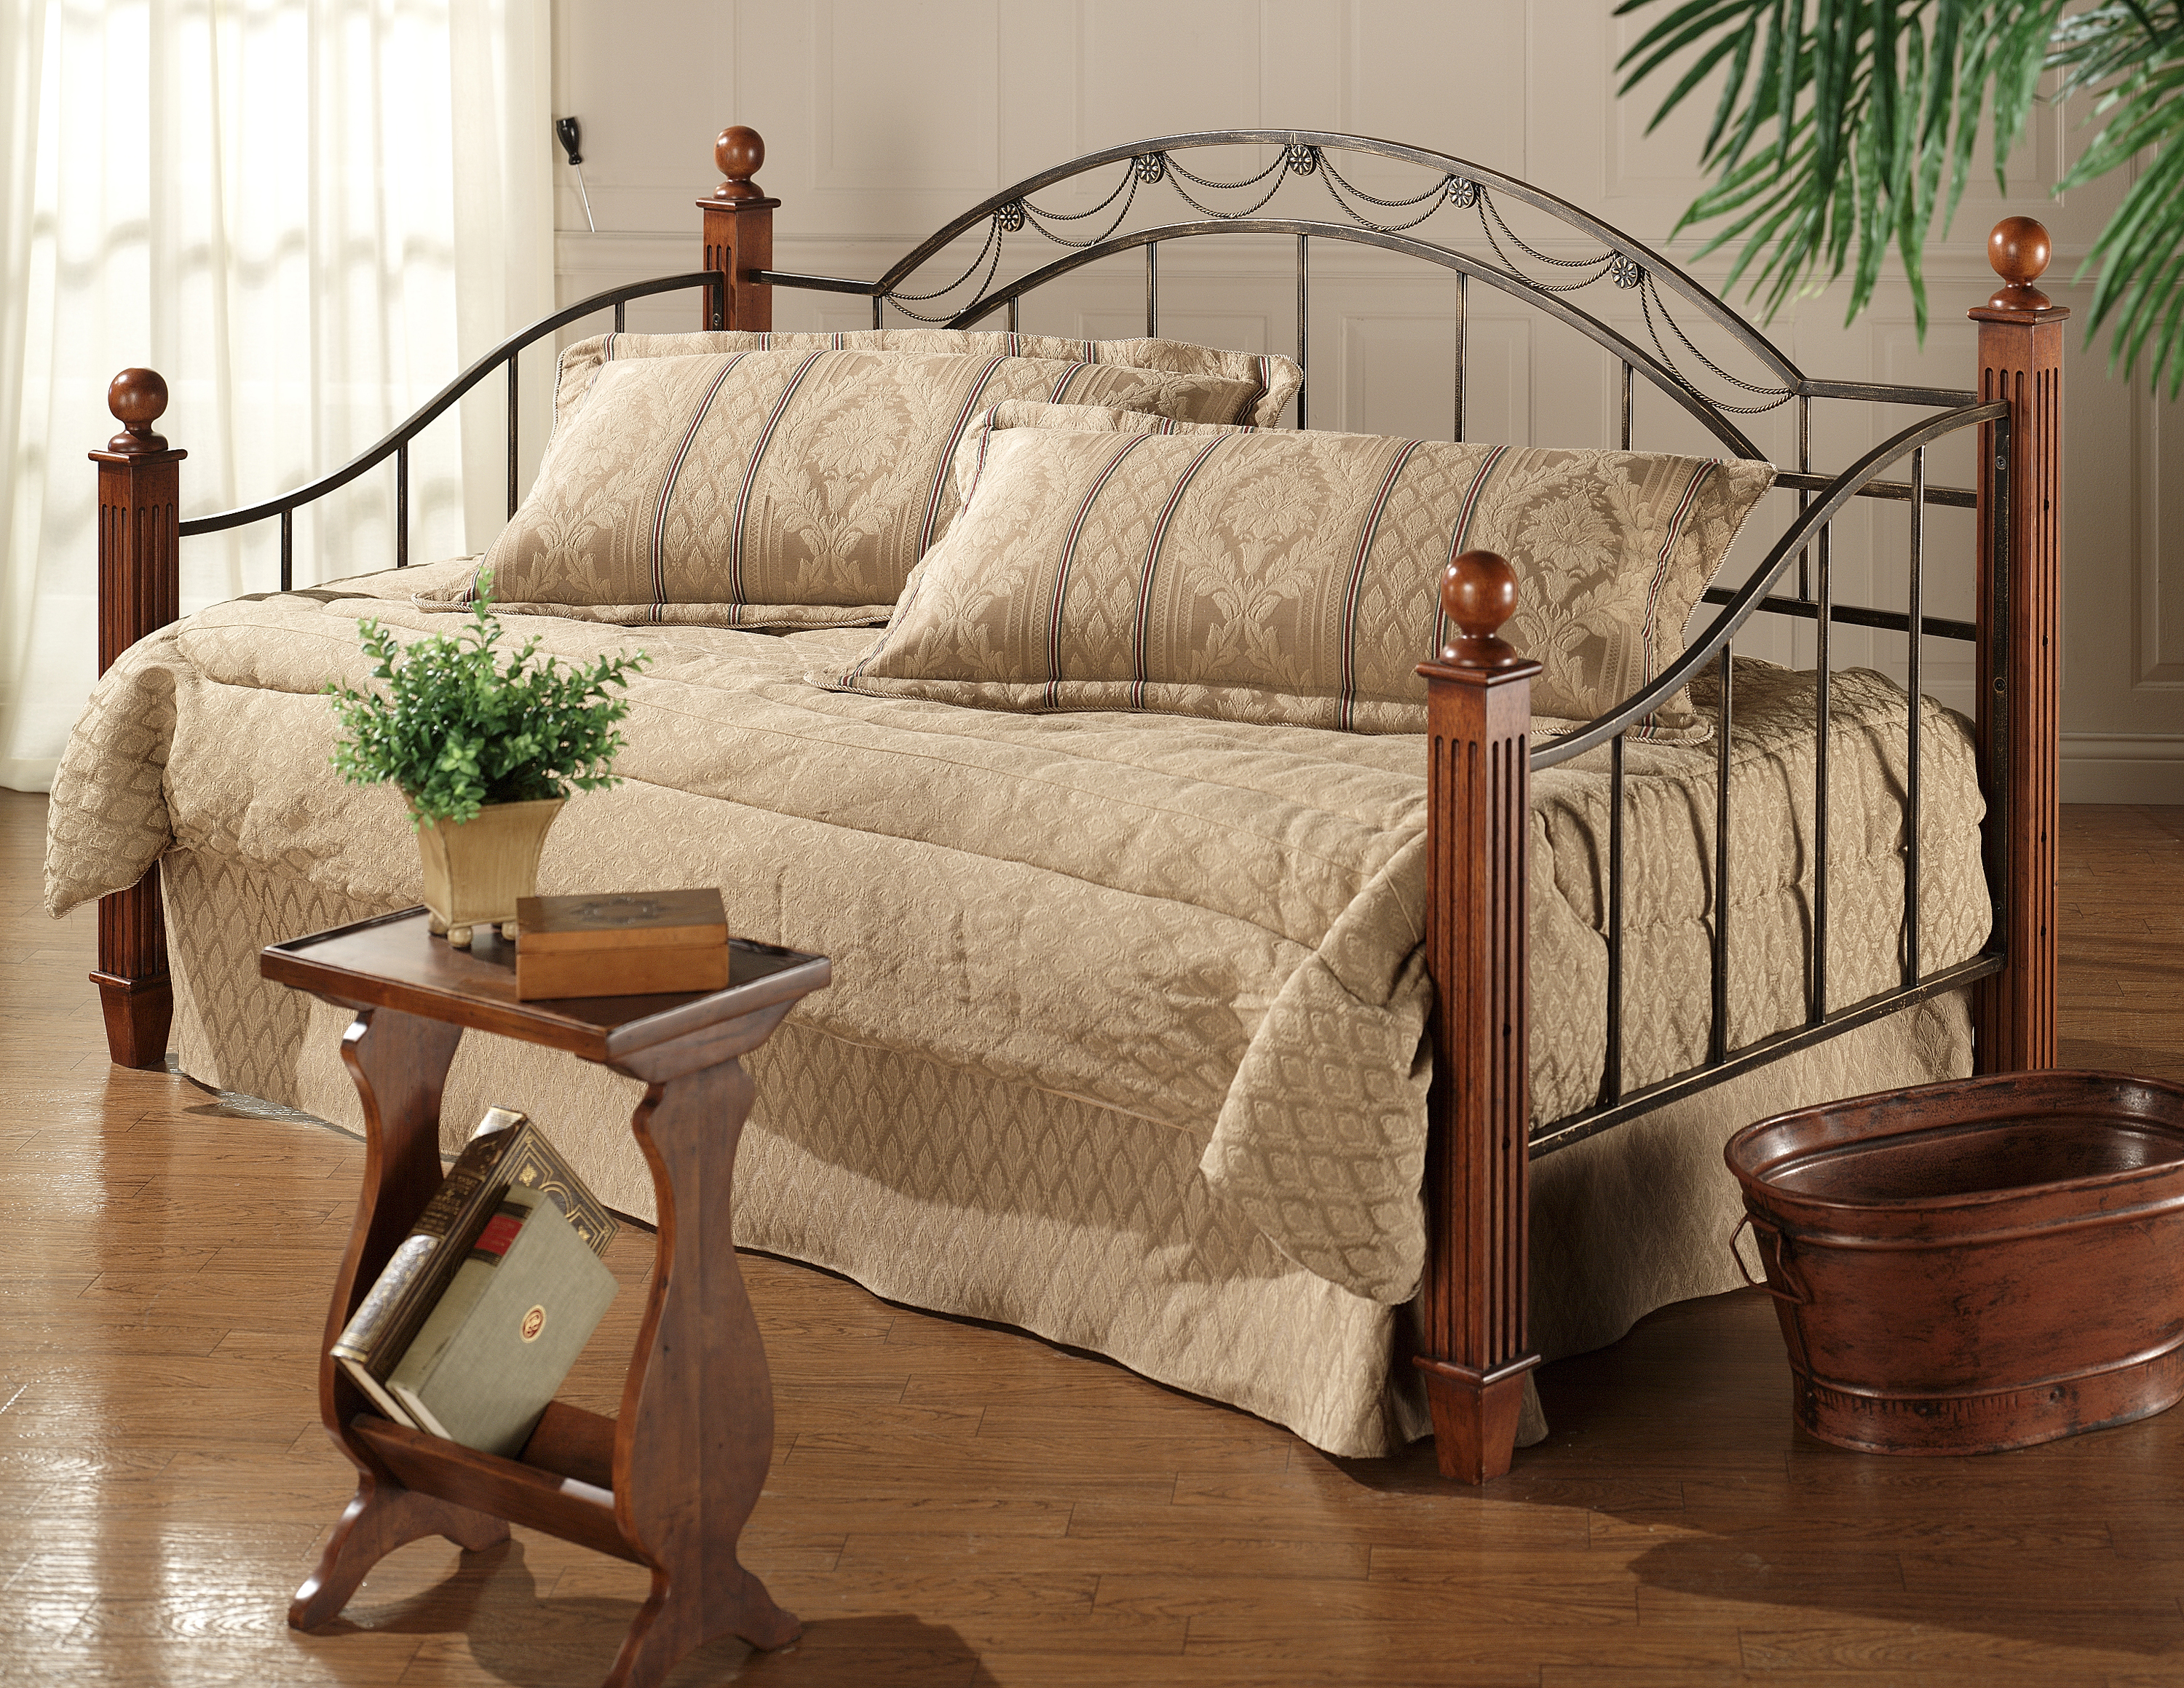 Hillsdale Daybeds Daybed with Suspension Deck and Trundle - Item Number: 171DBWDLHTR